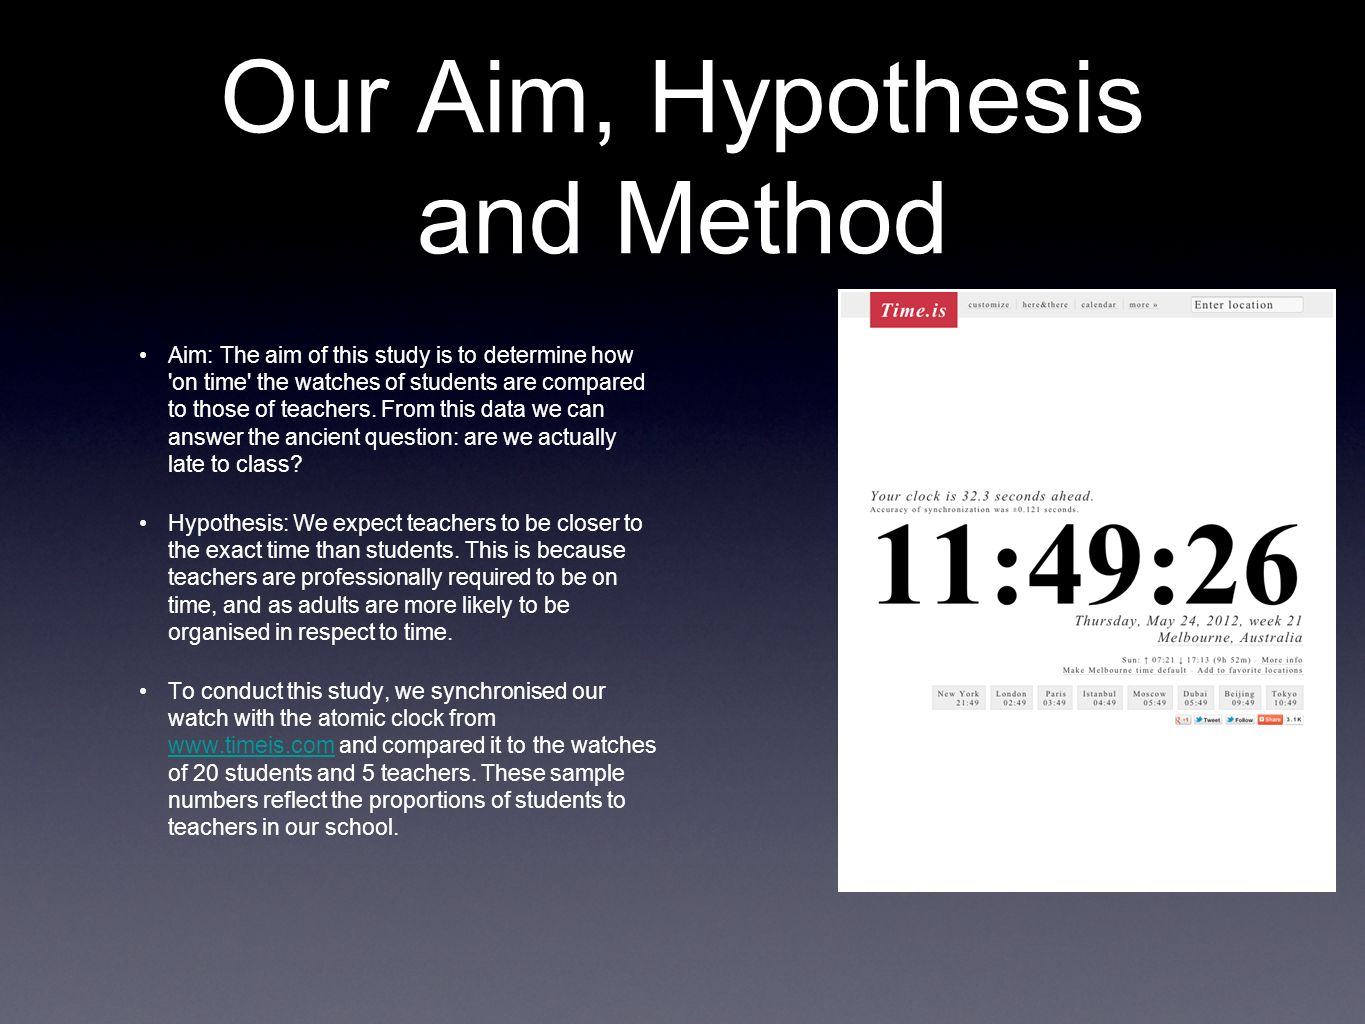 Our Aim, Hypothesis and Method